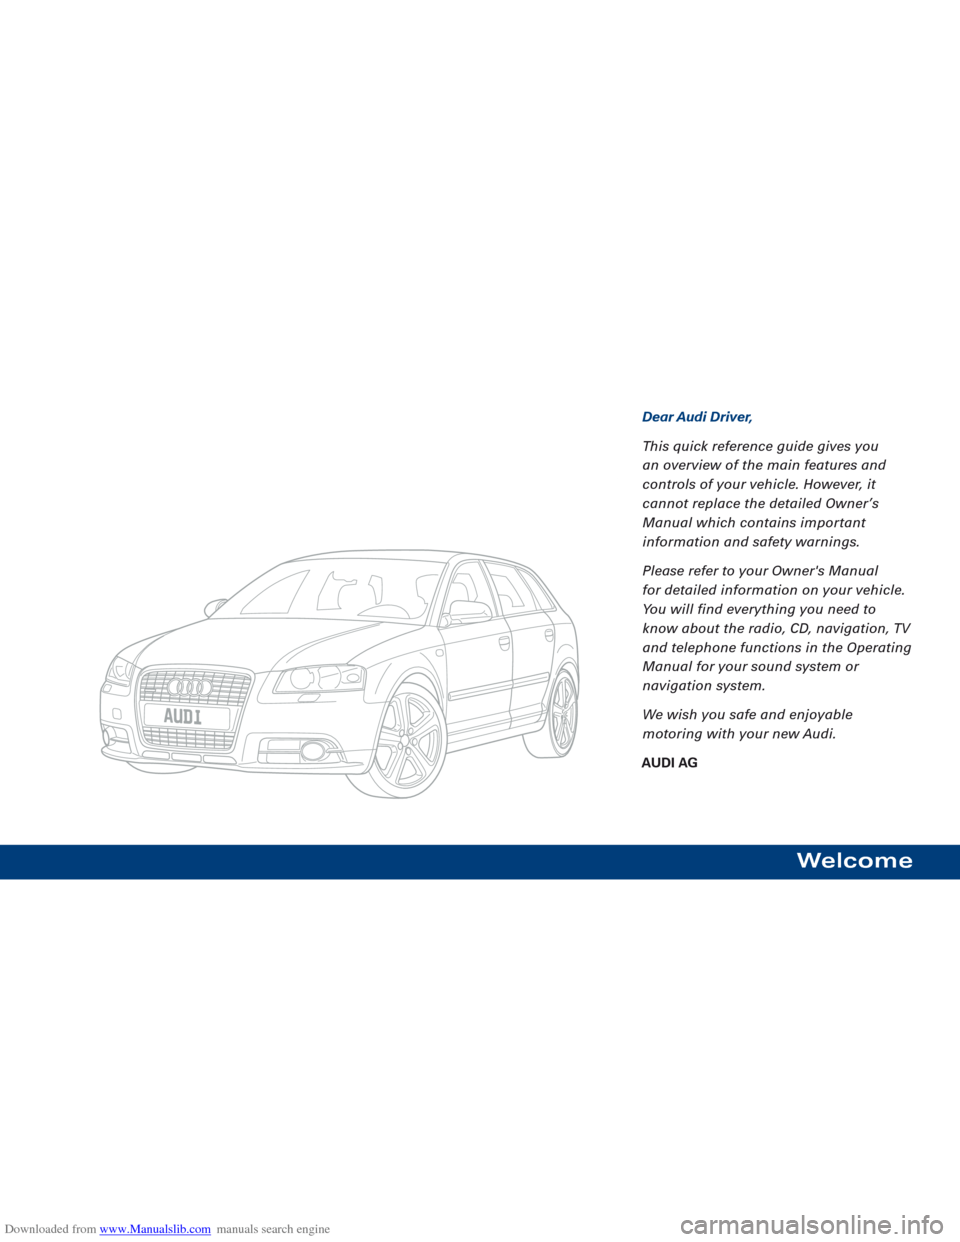 AUDI A3 2007 8P / 2.G Quick Reference Guide